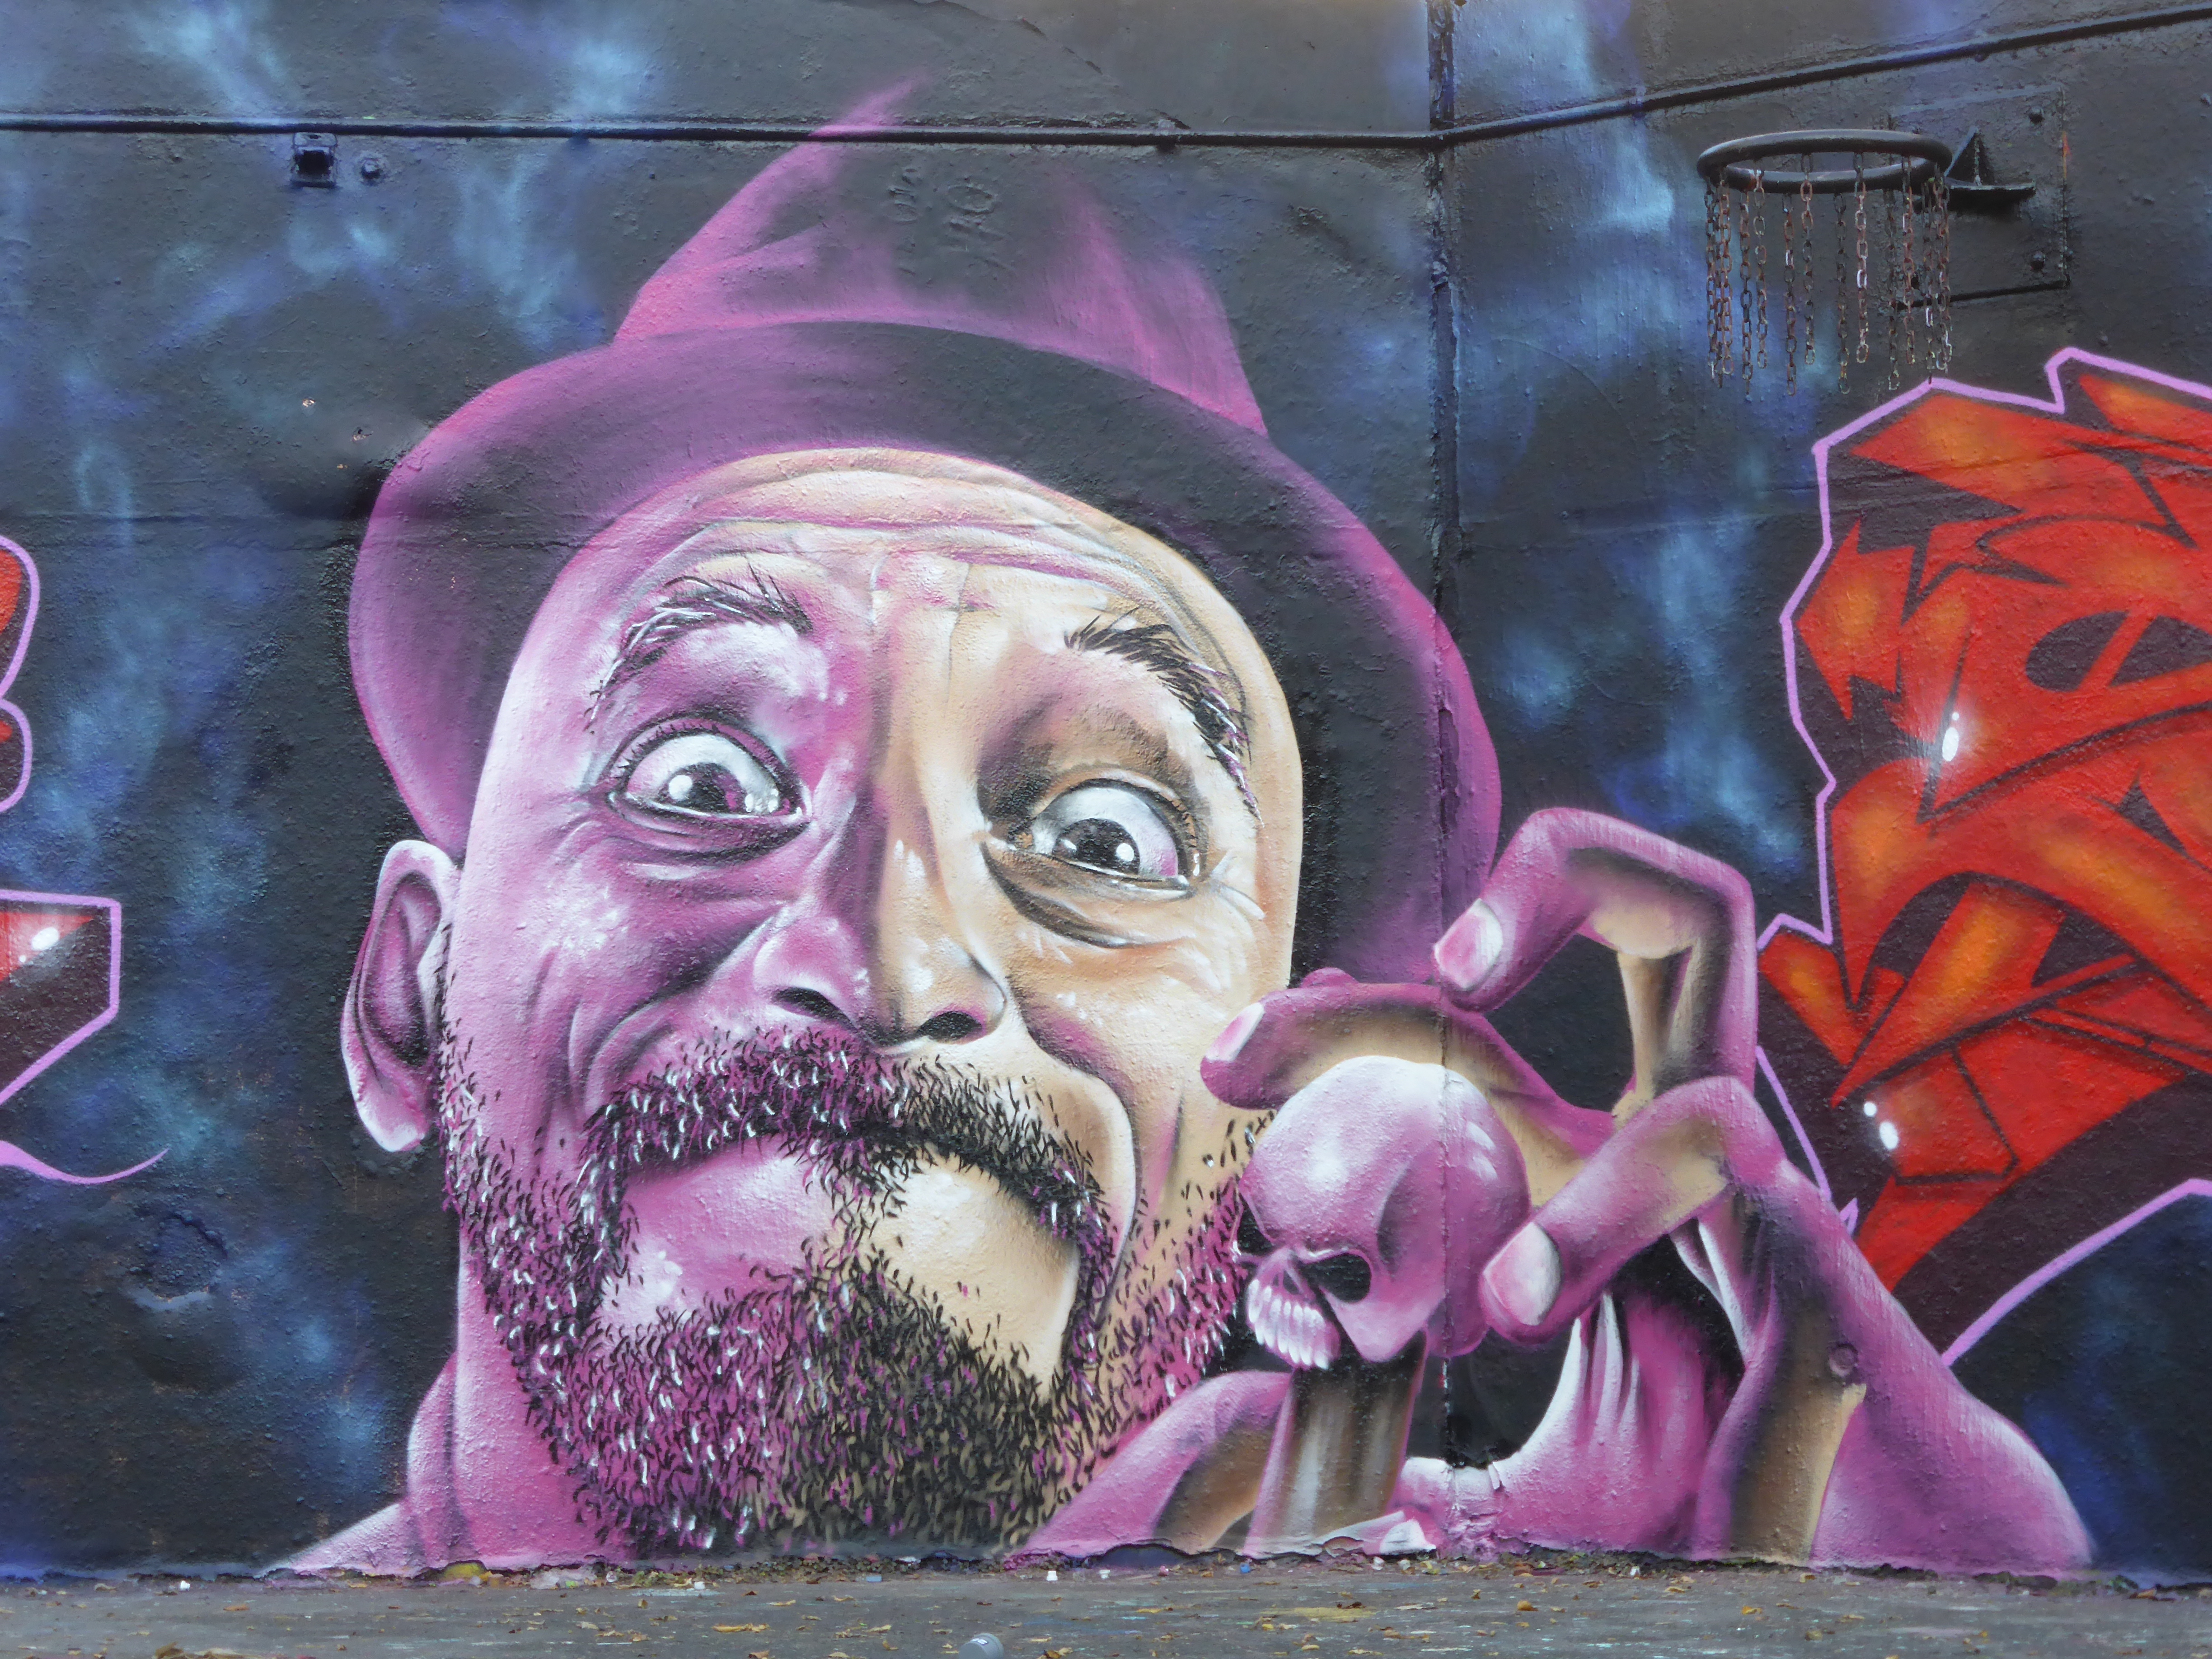 Grafitti fine art 2015 - Work By Ceno2 In Stockwell